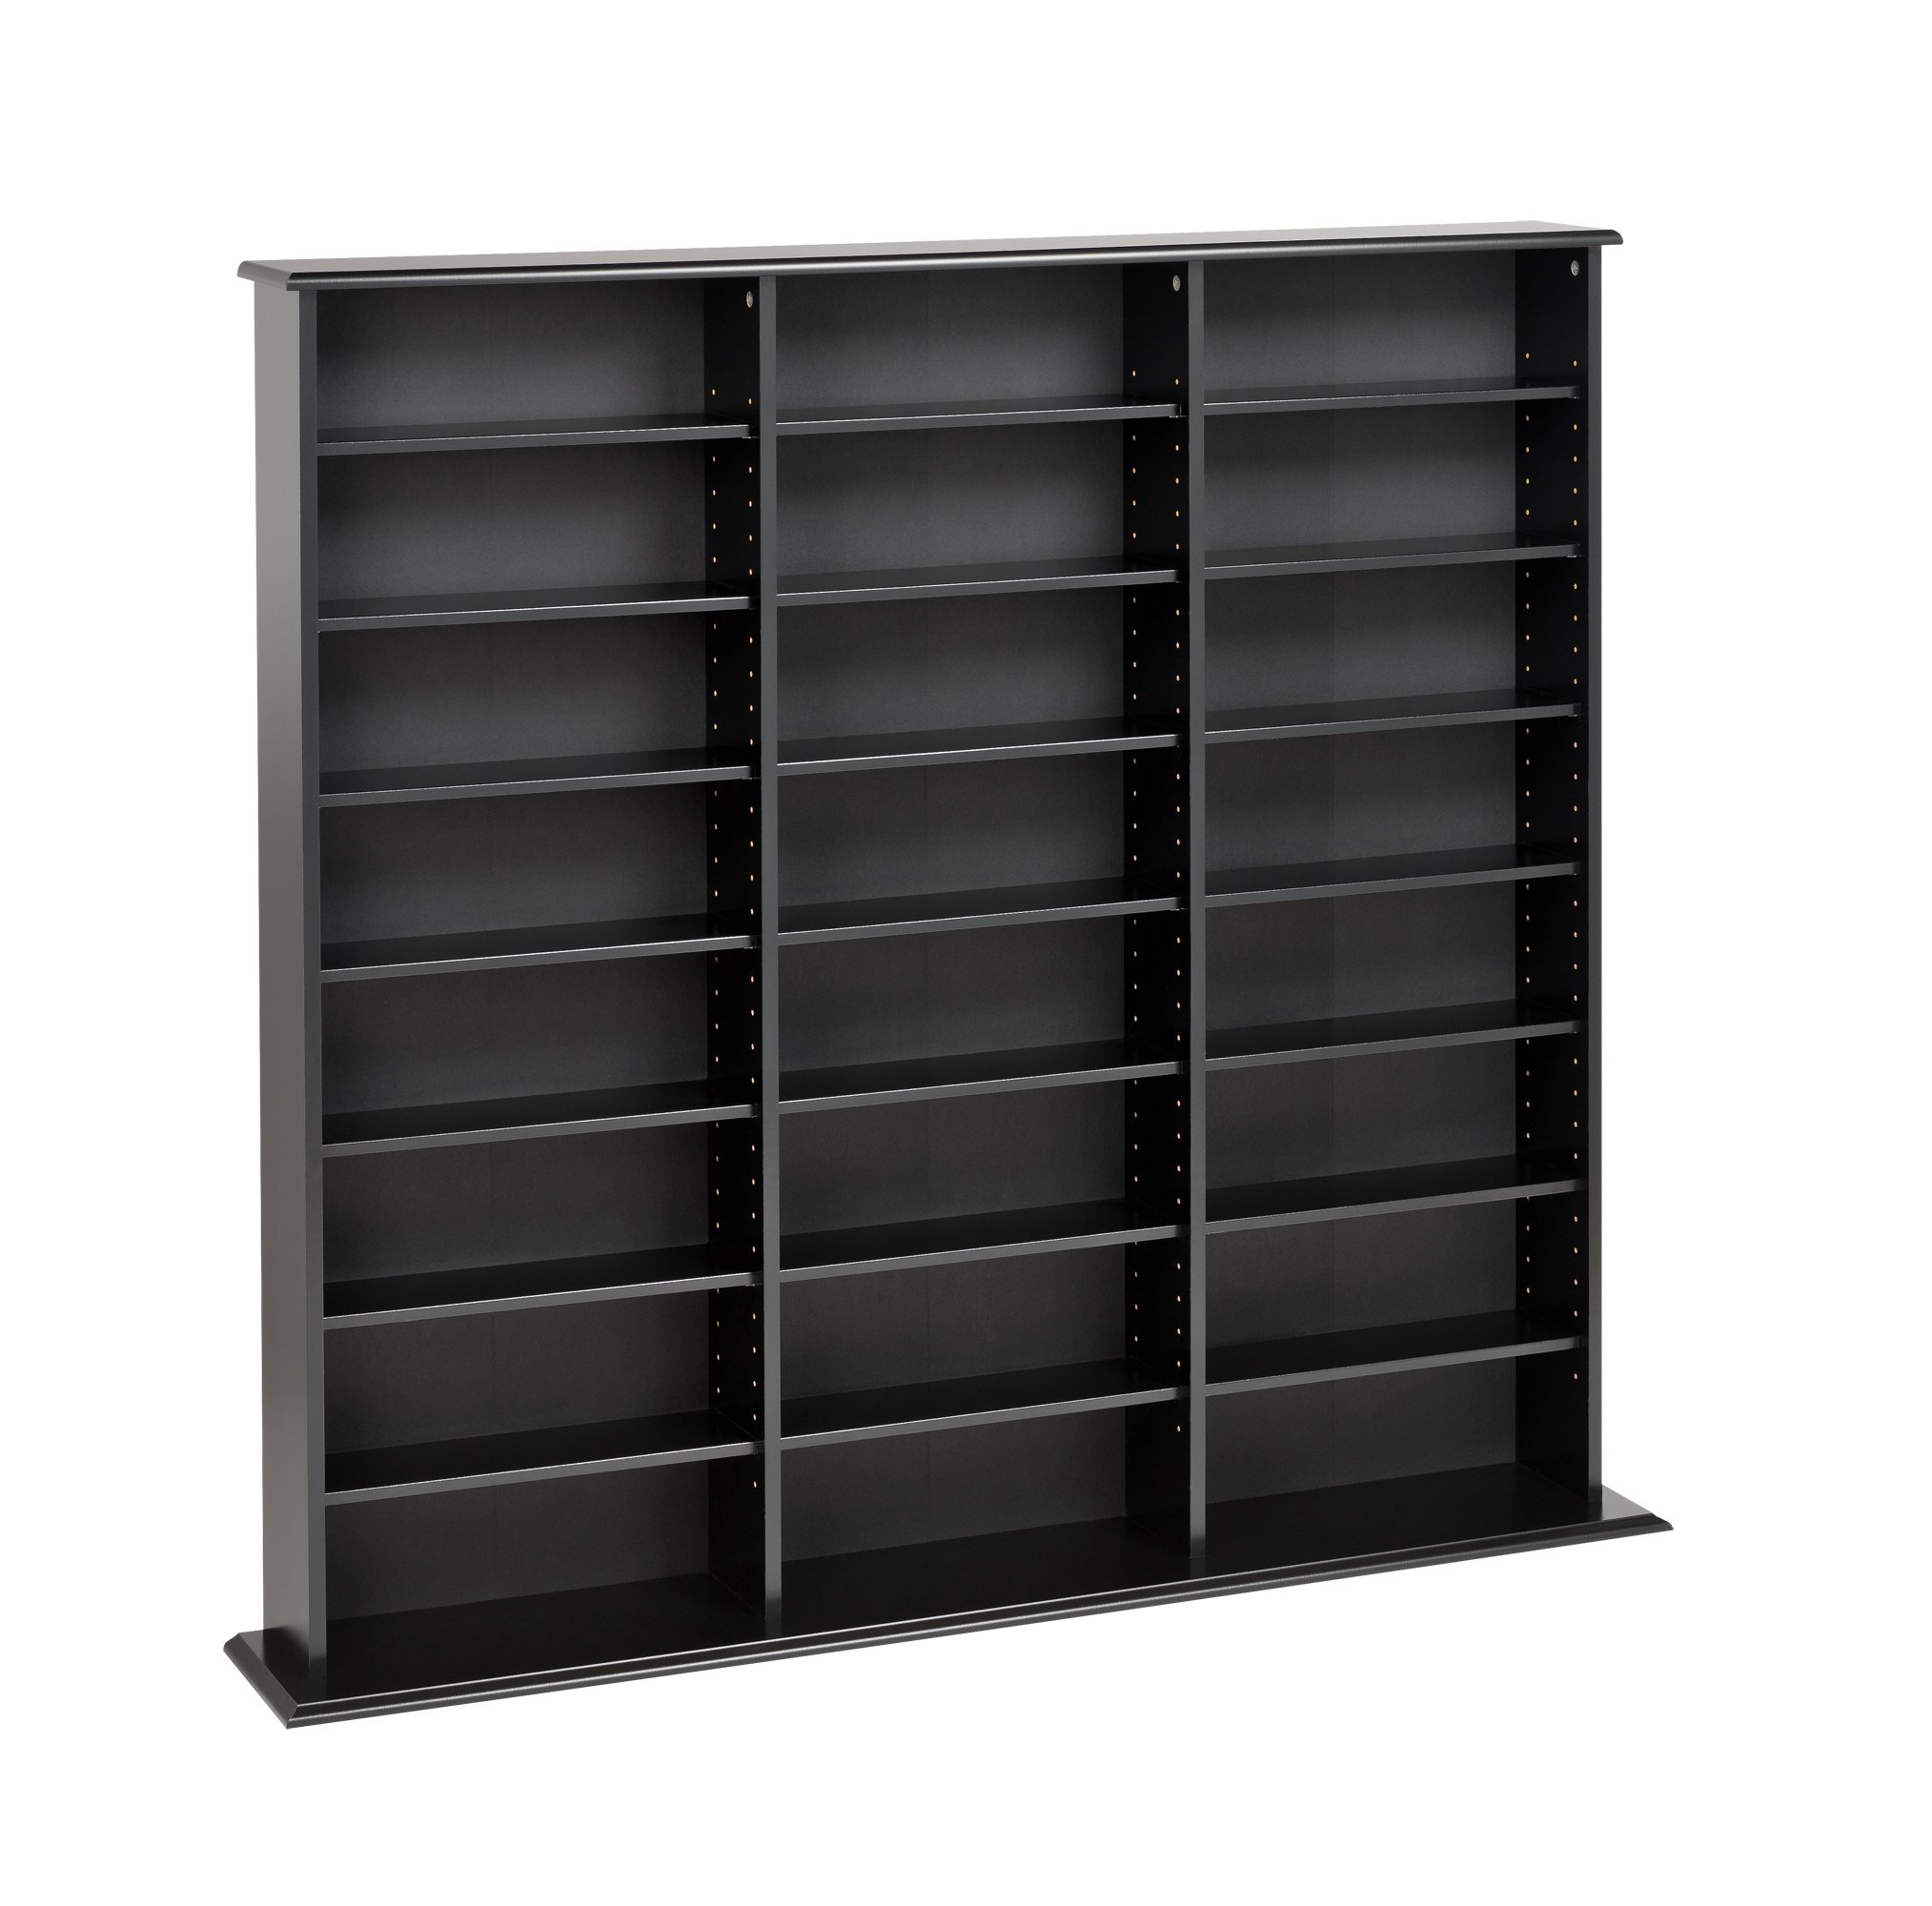 Prepac Black Triple-Width Wall Media Storage Rack by Prepac